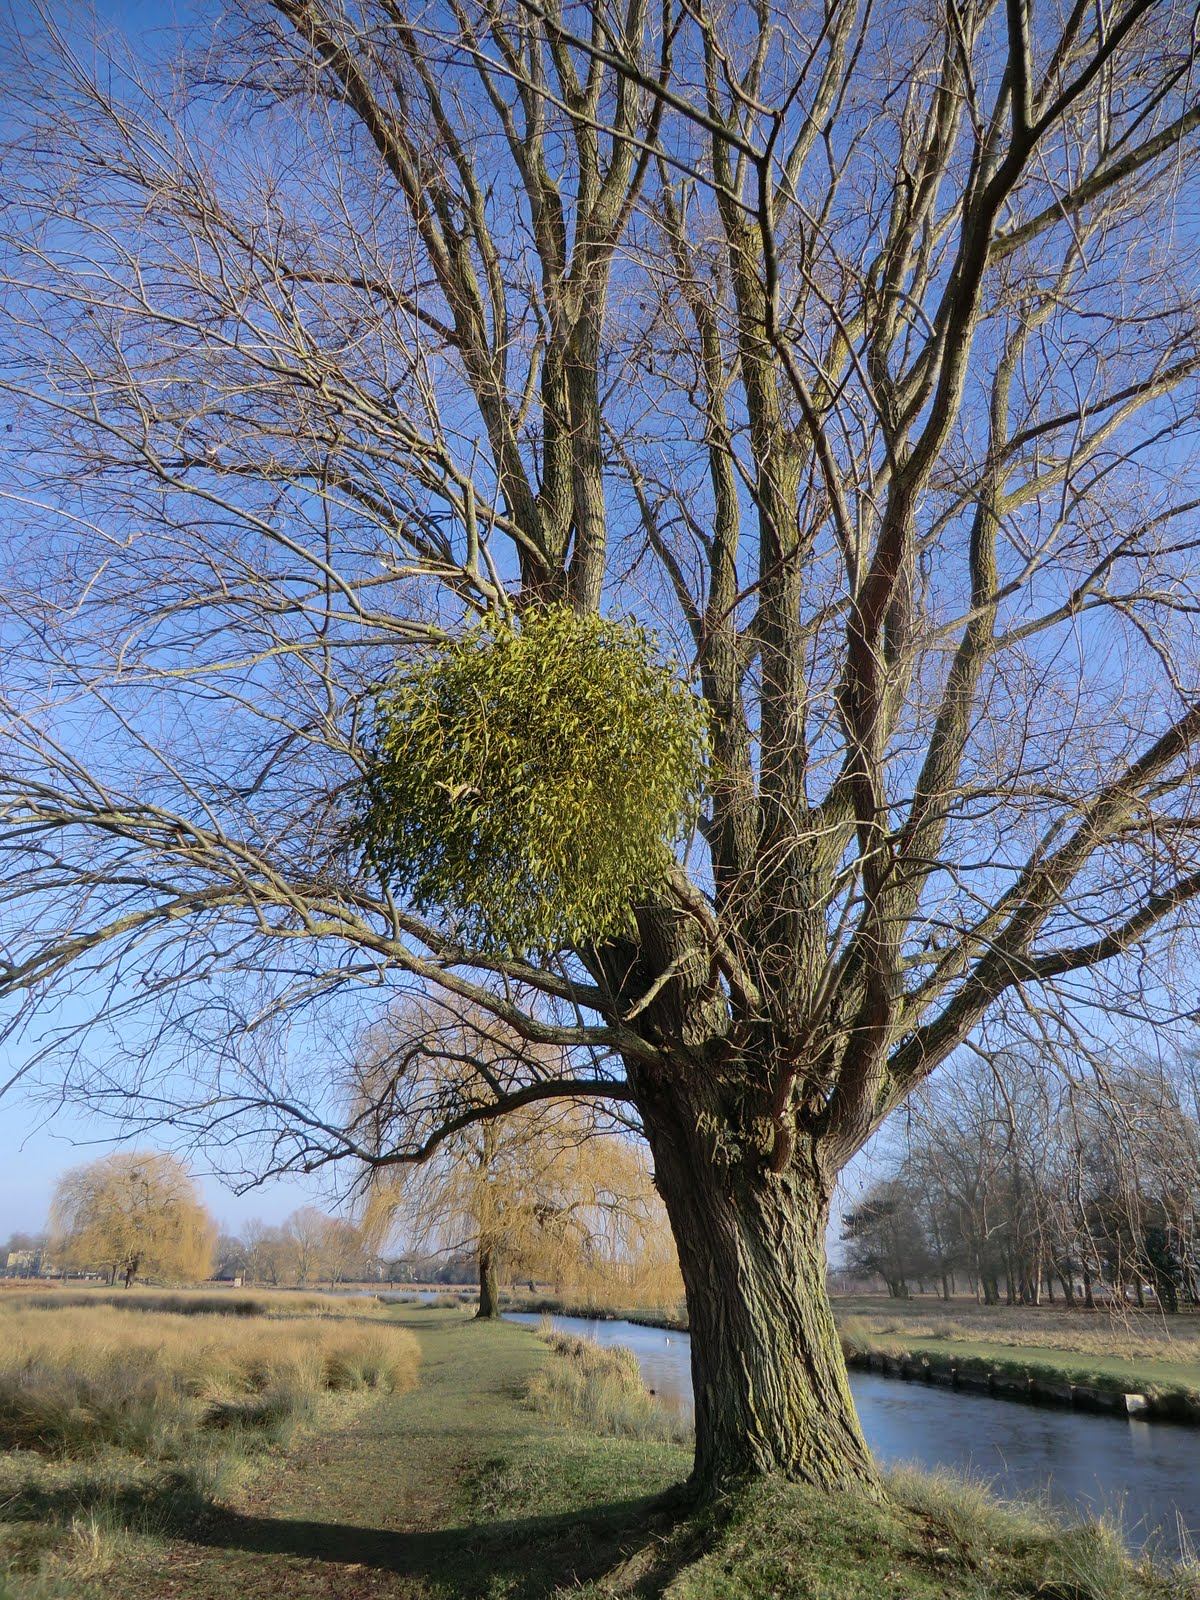 CIMG6451 Mistletoe on willow, Bushy Park